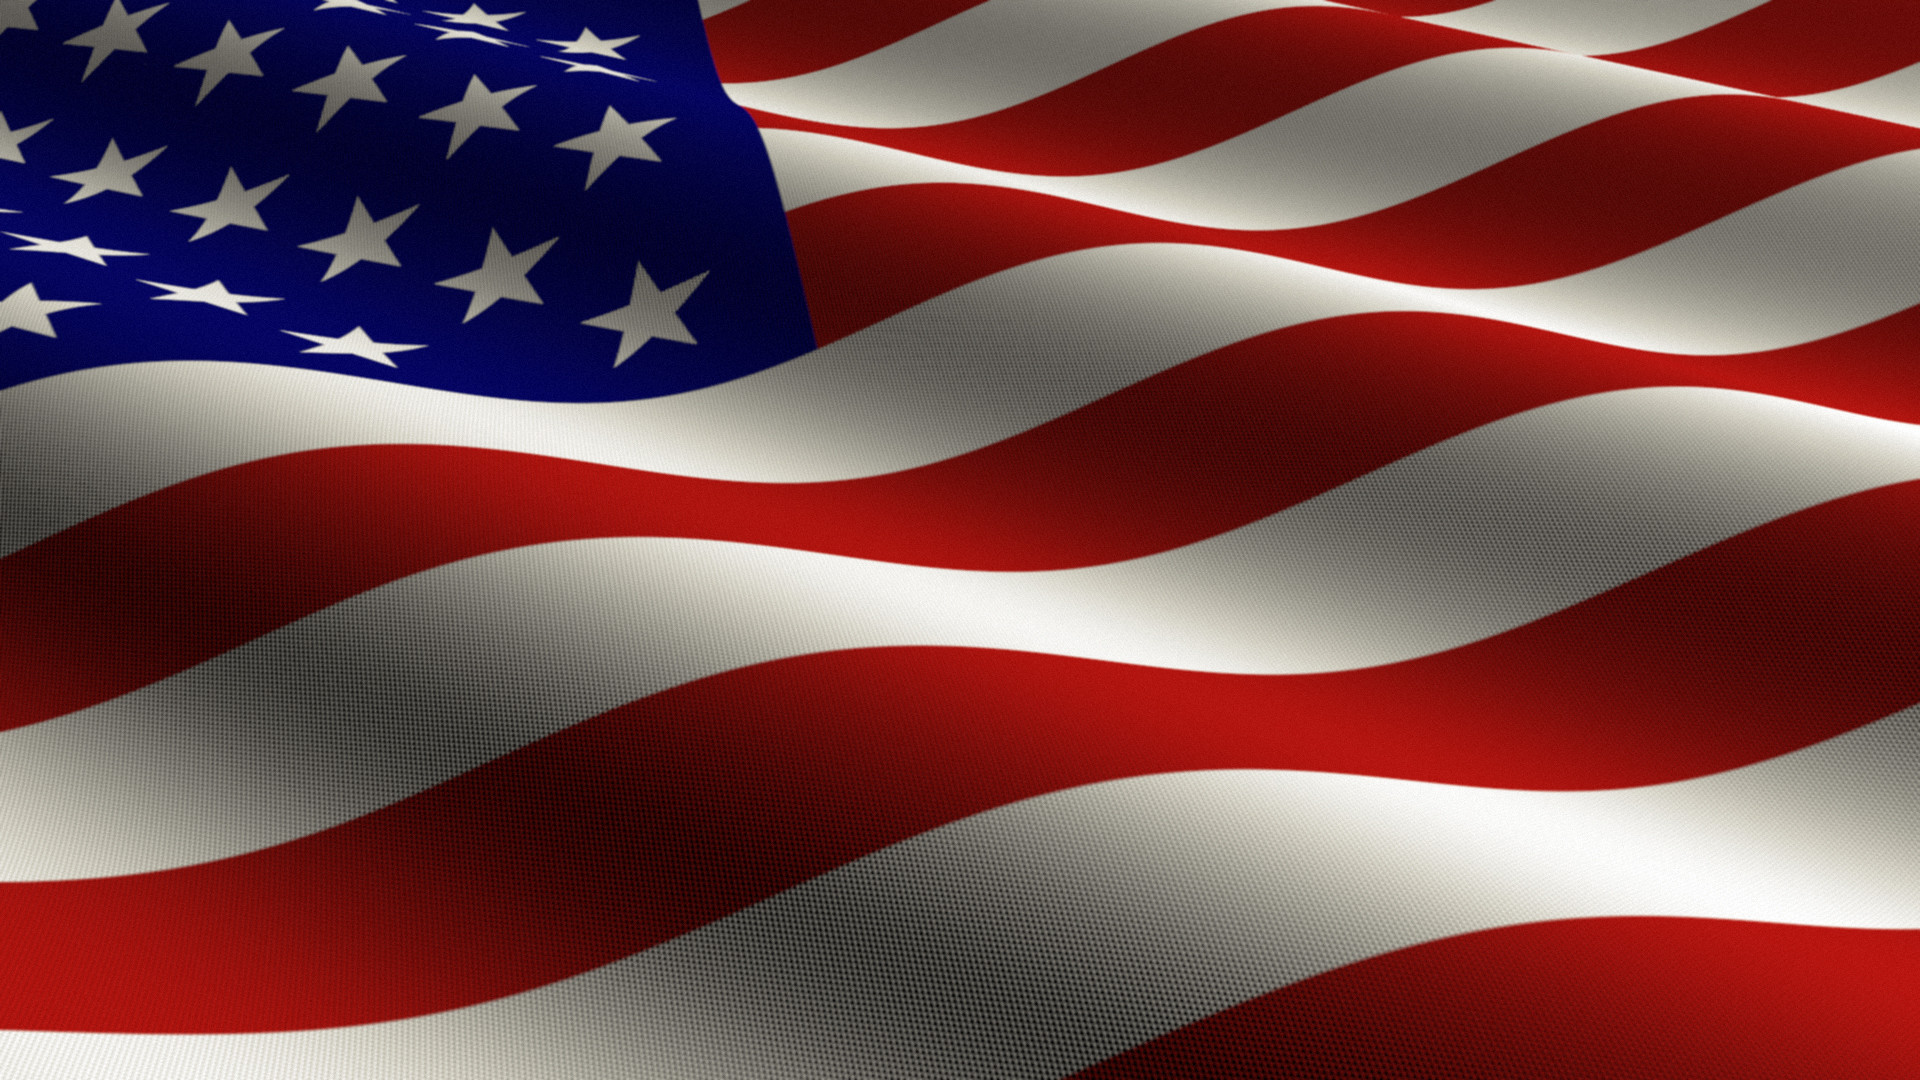 American Flag Wallpapers | HD Wallpapers Early